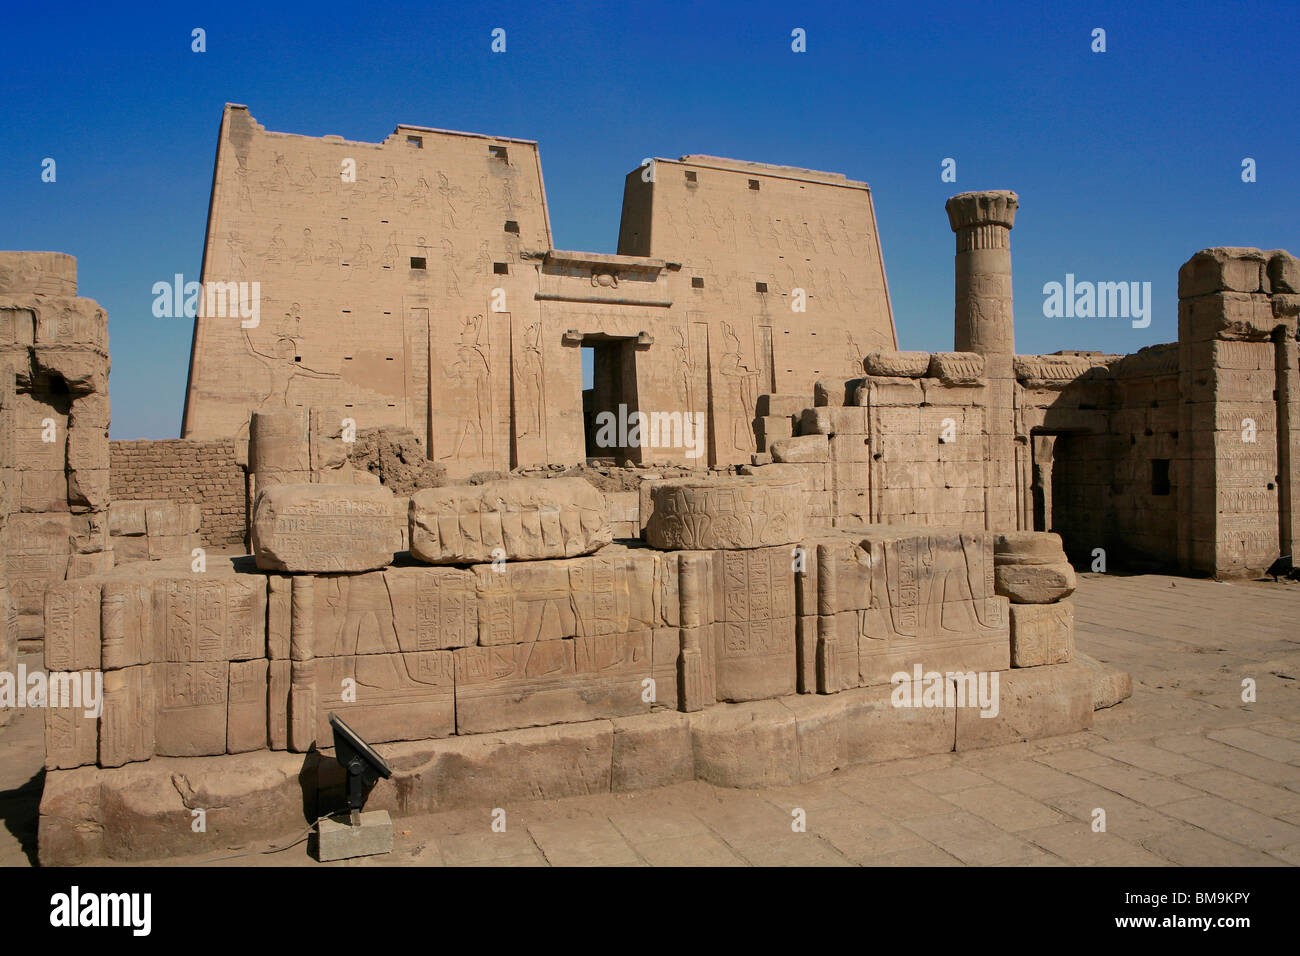 Main entrance of the first pylon of the Temple of Horus in Edfu, Egypt Stock Photo